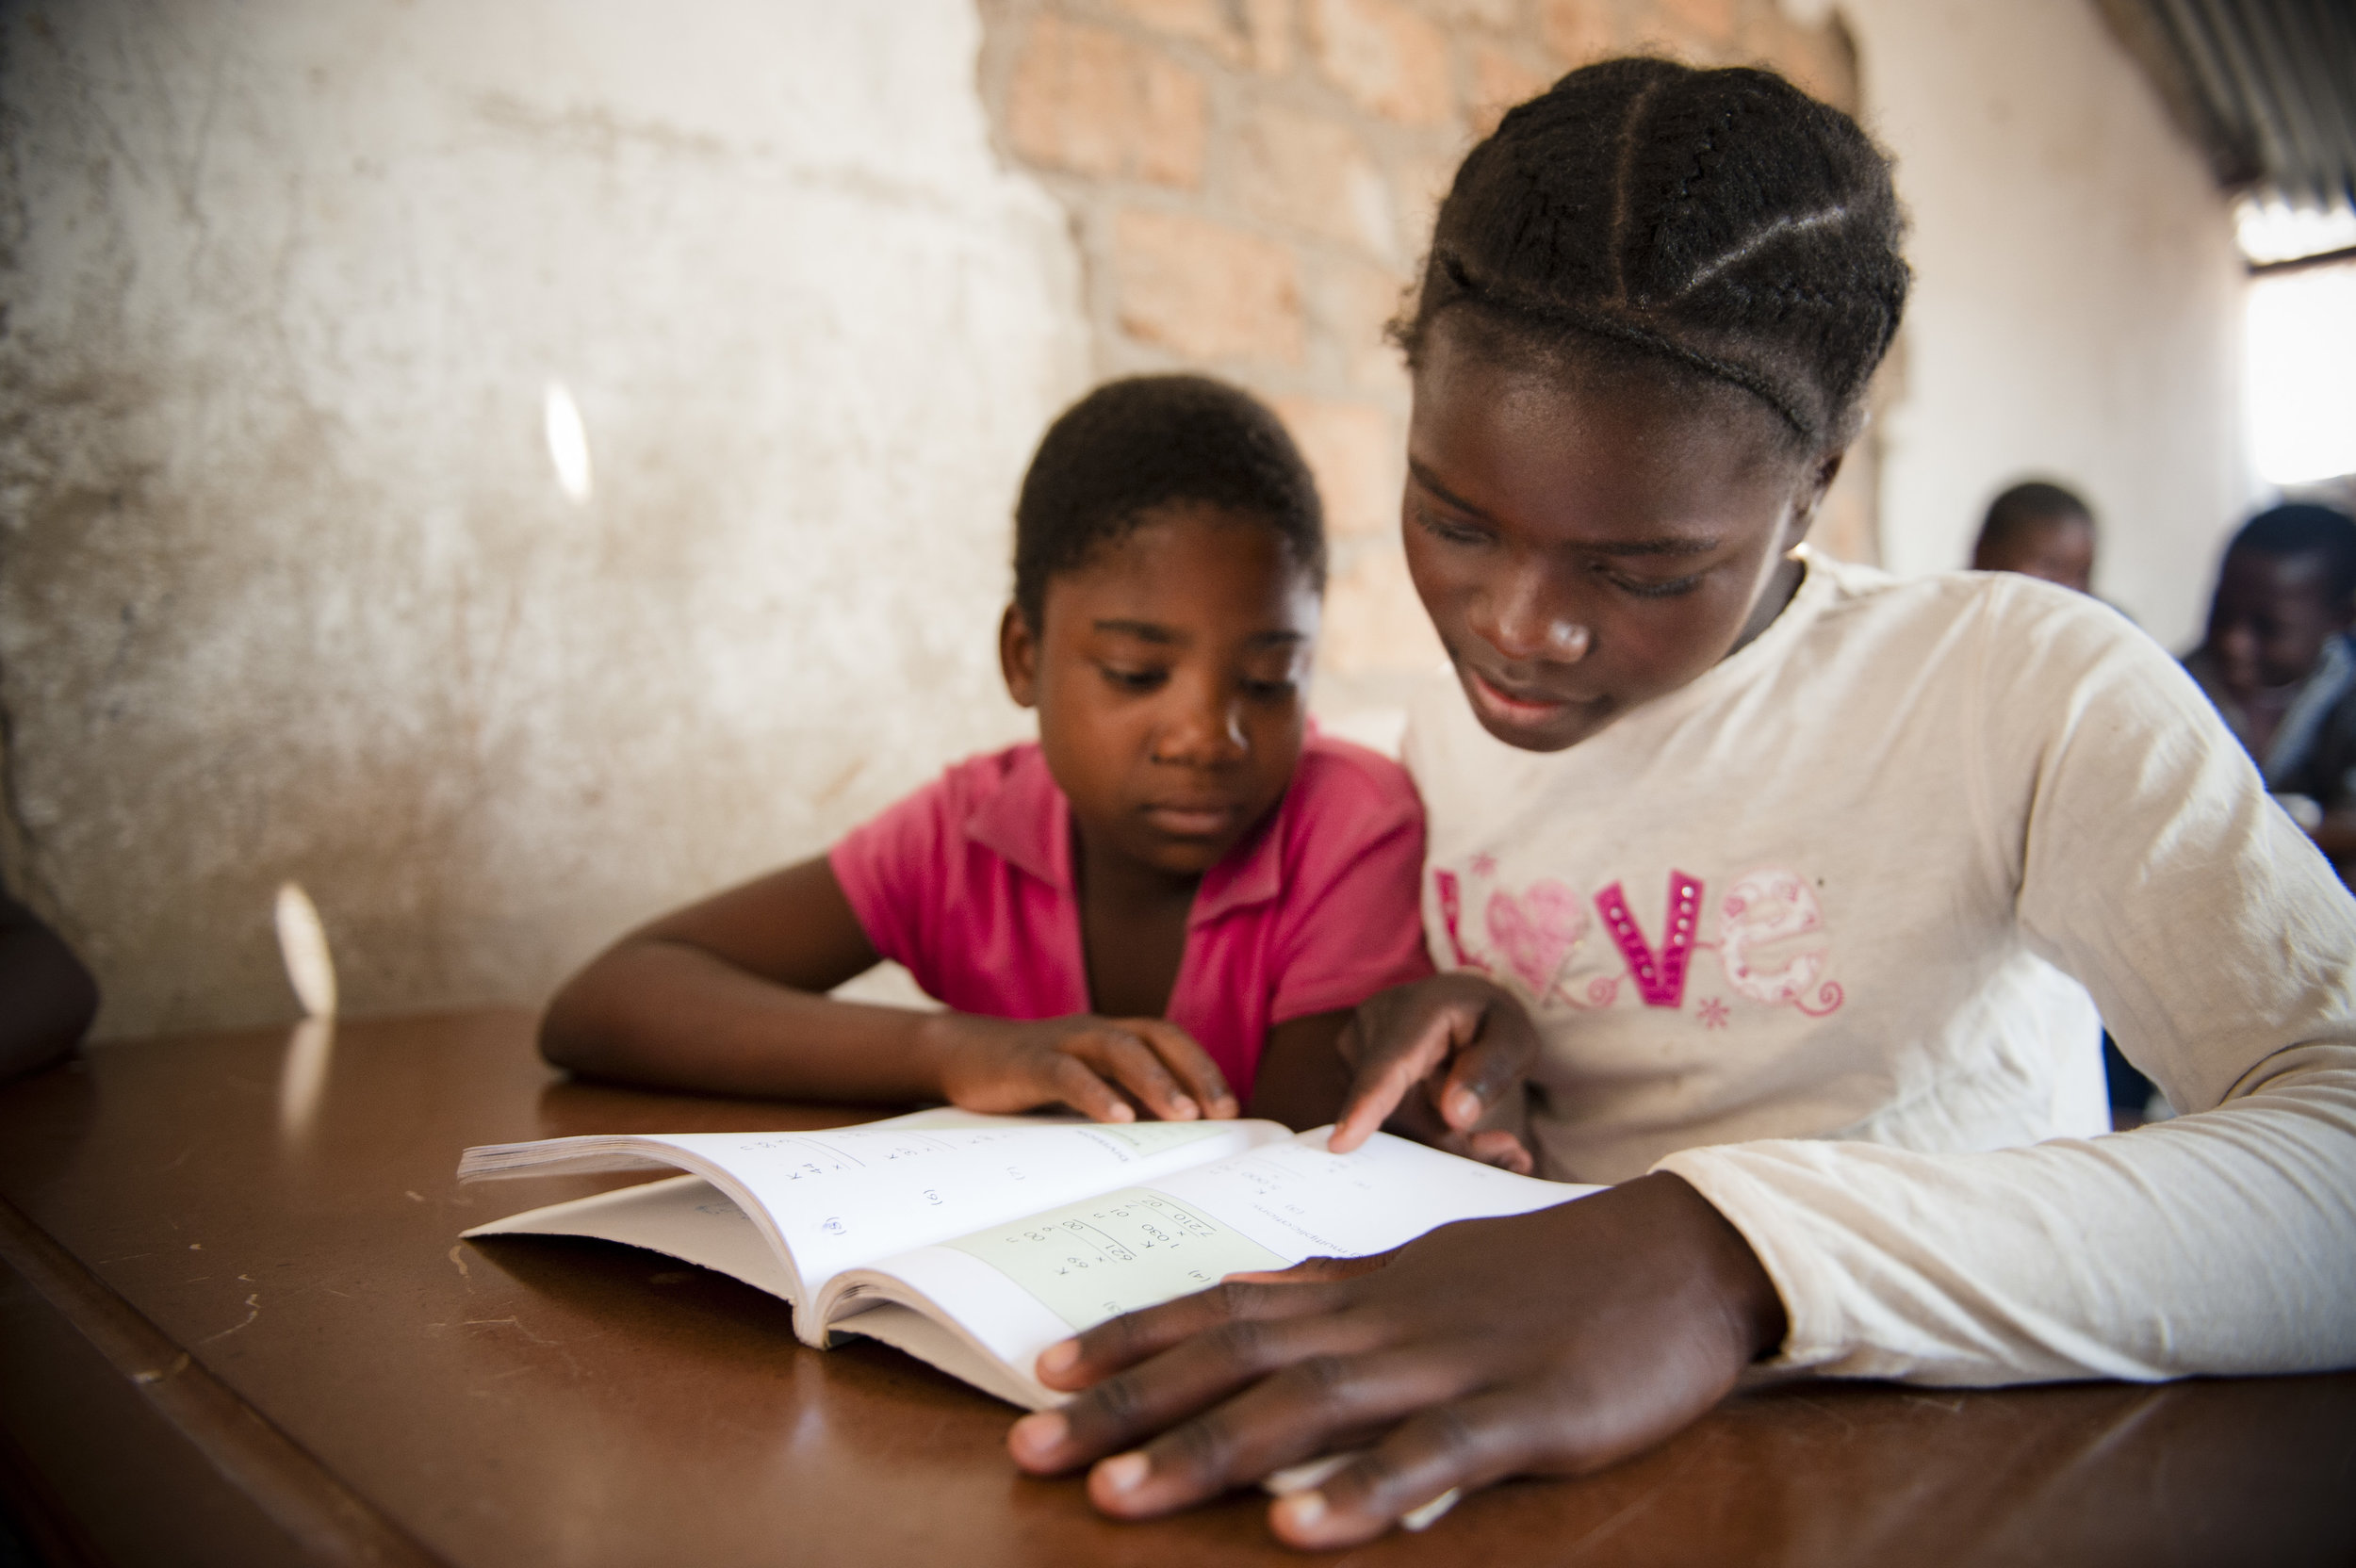 an older African girl looks at a text book with a younger African girl